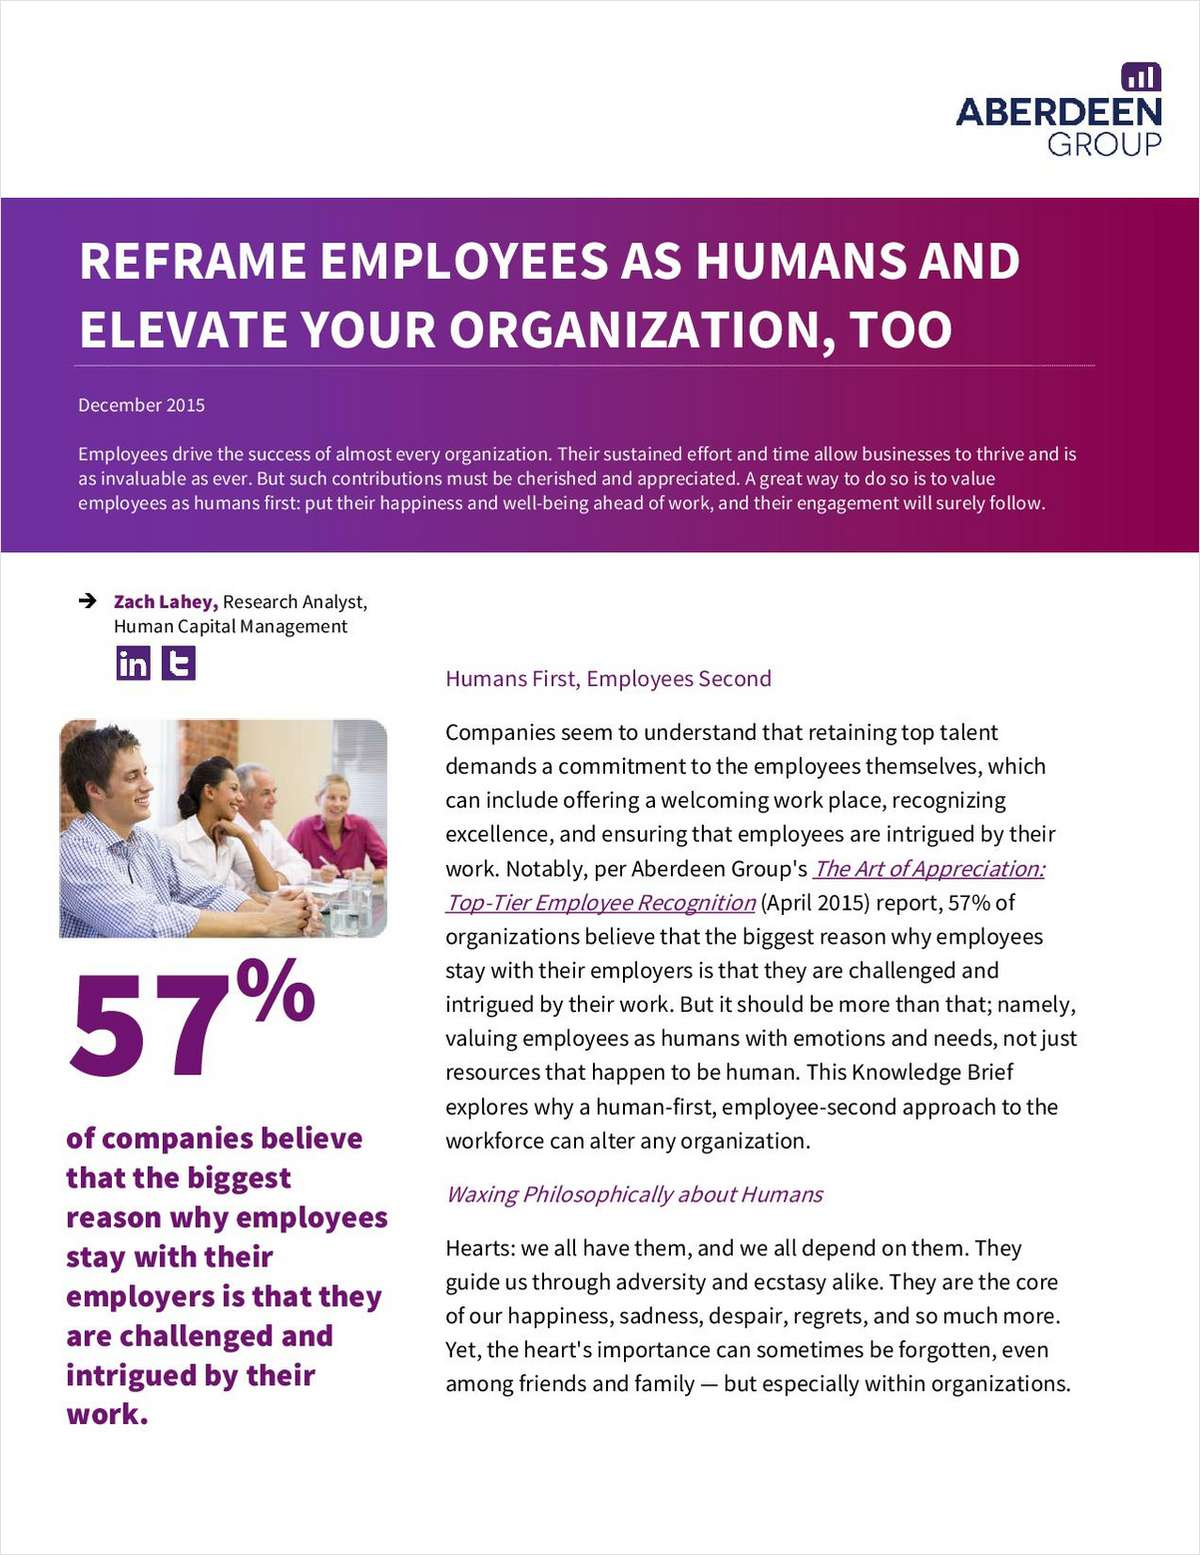 Aberdeen Group: Reframe Employees as Humans And Elevate Your Organization, Too